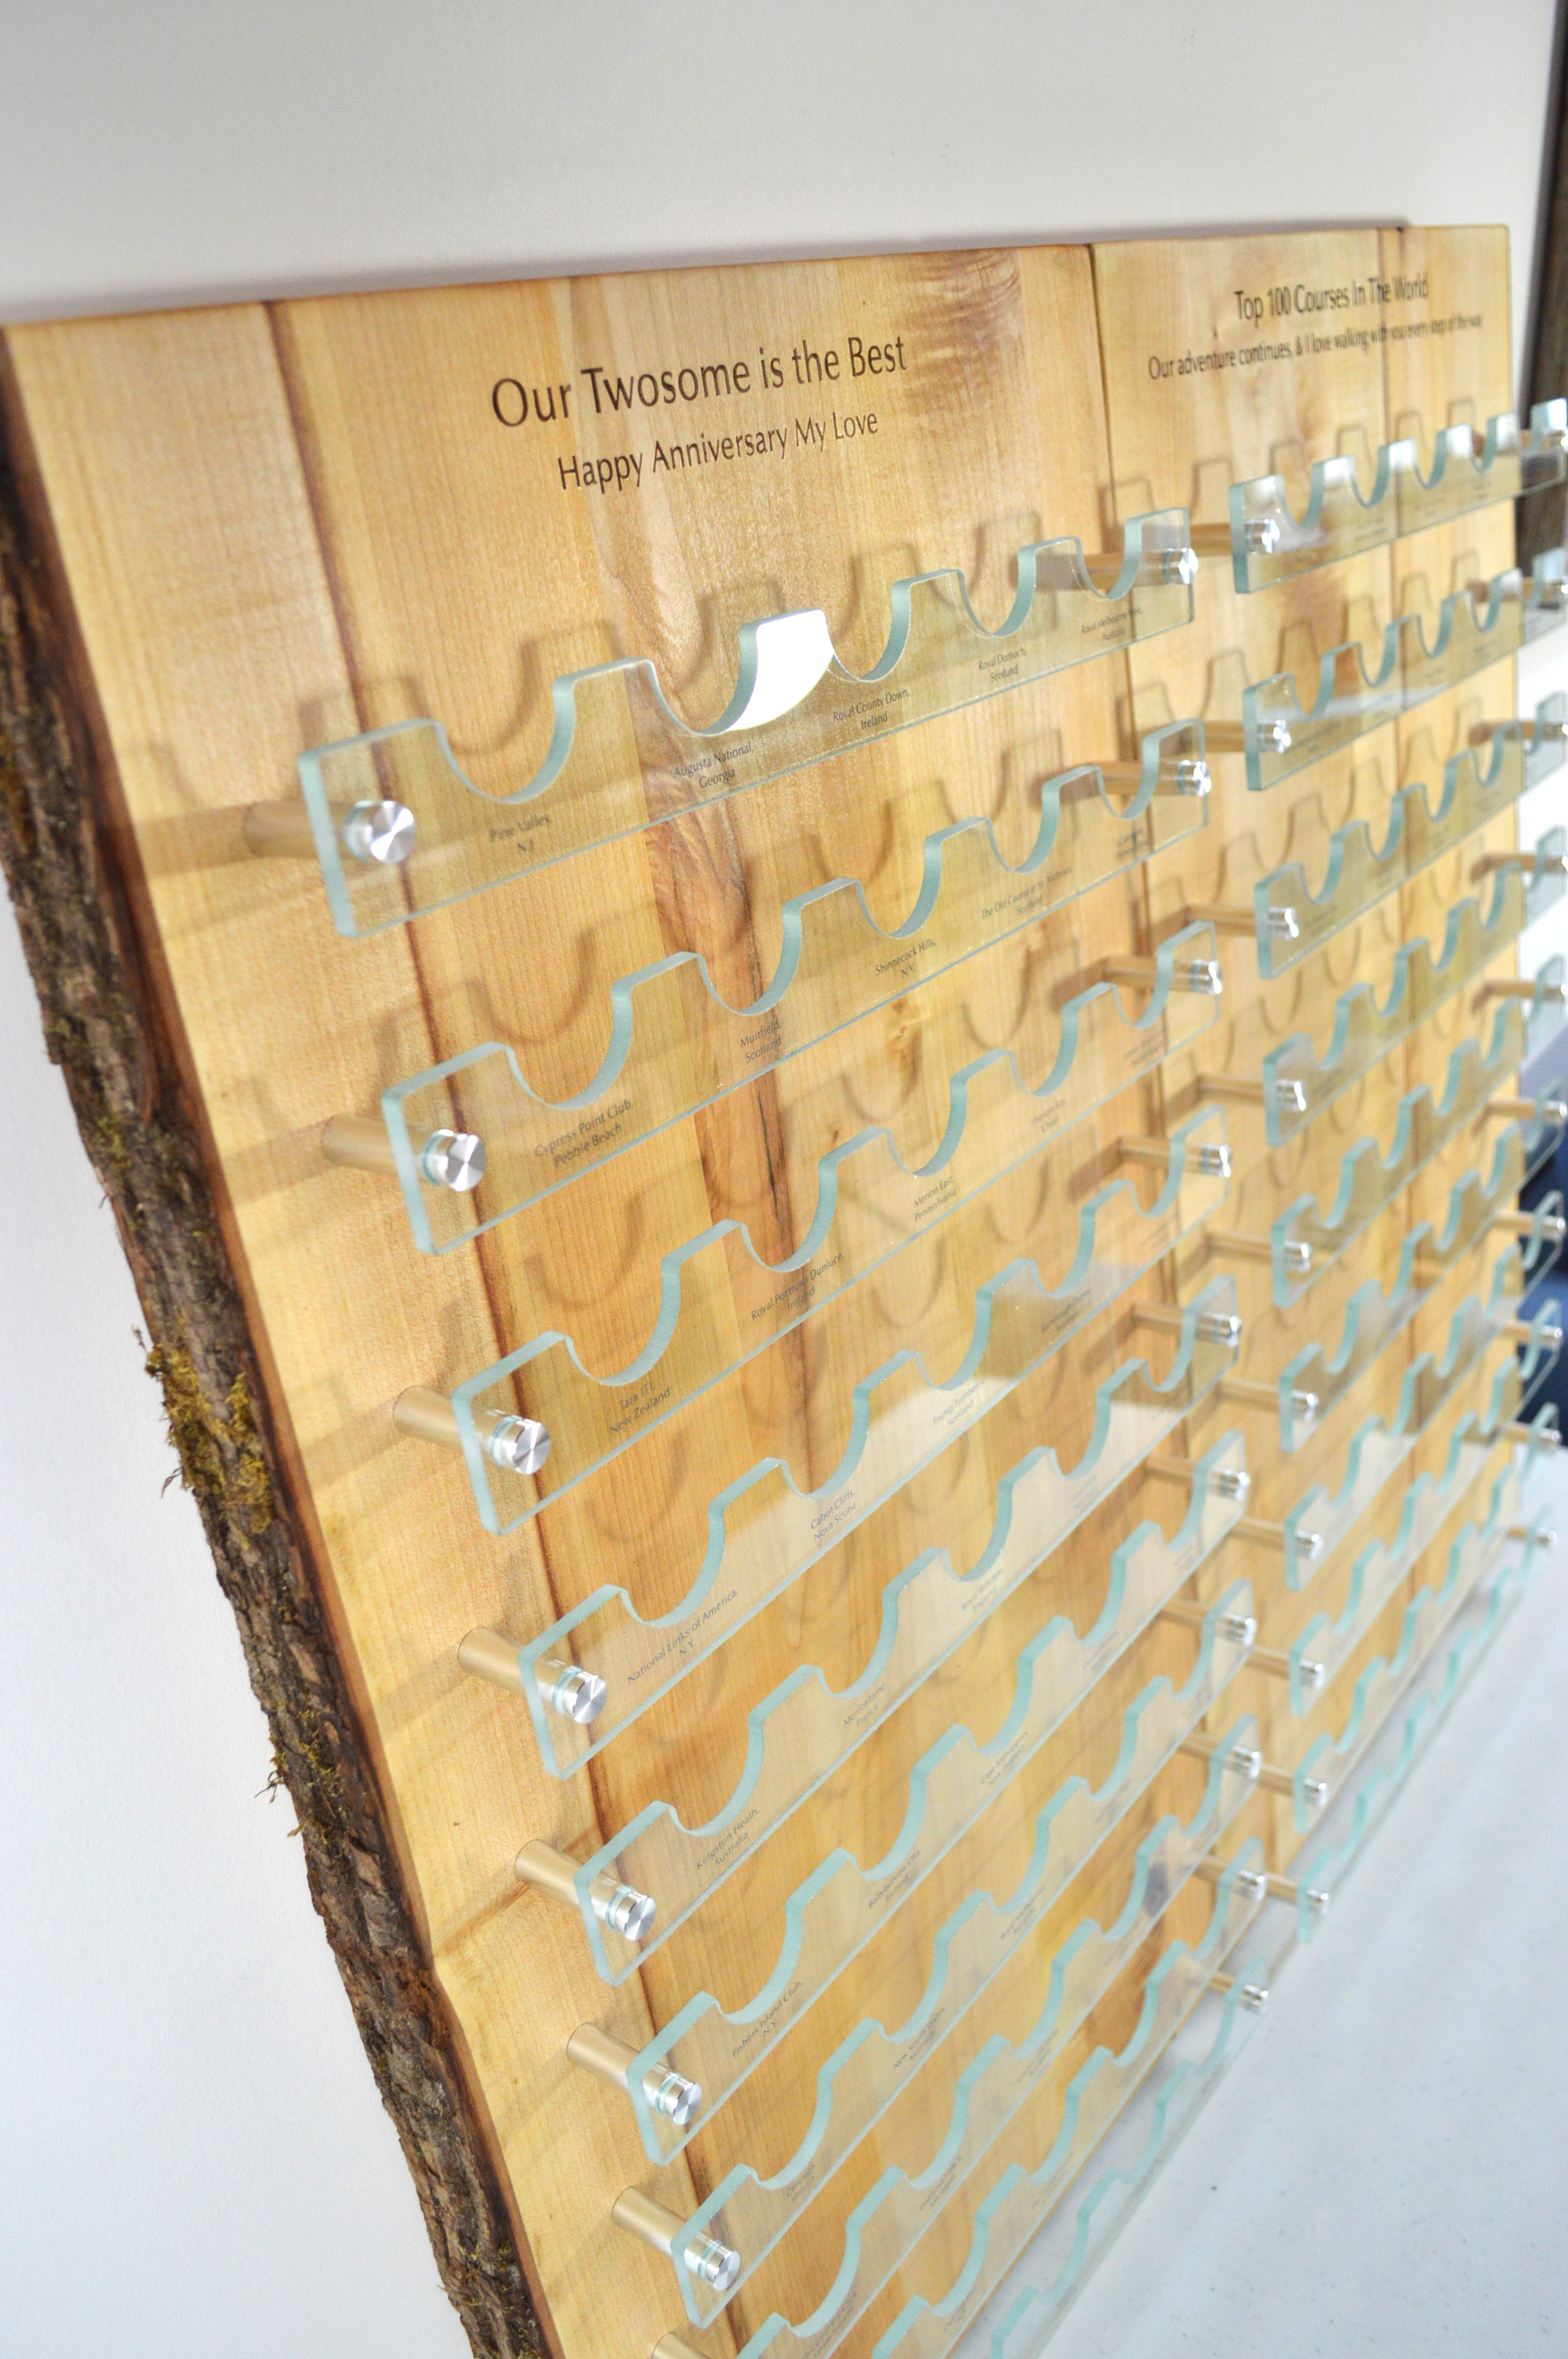 custom-awards_sustainable_salvaged-wood_glass_personalized_golf-ball-display-wall-plaque_Vancouver2